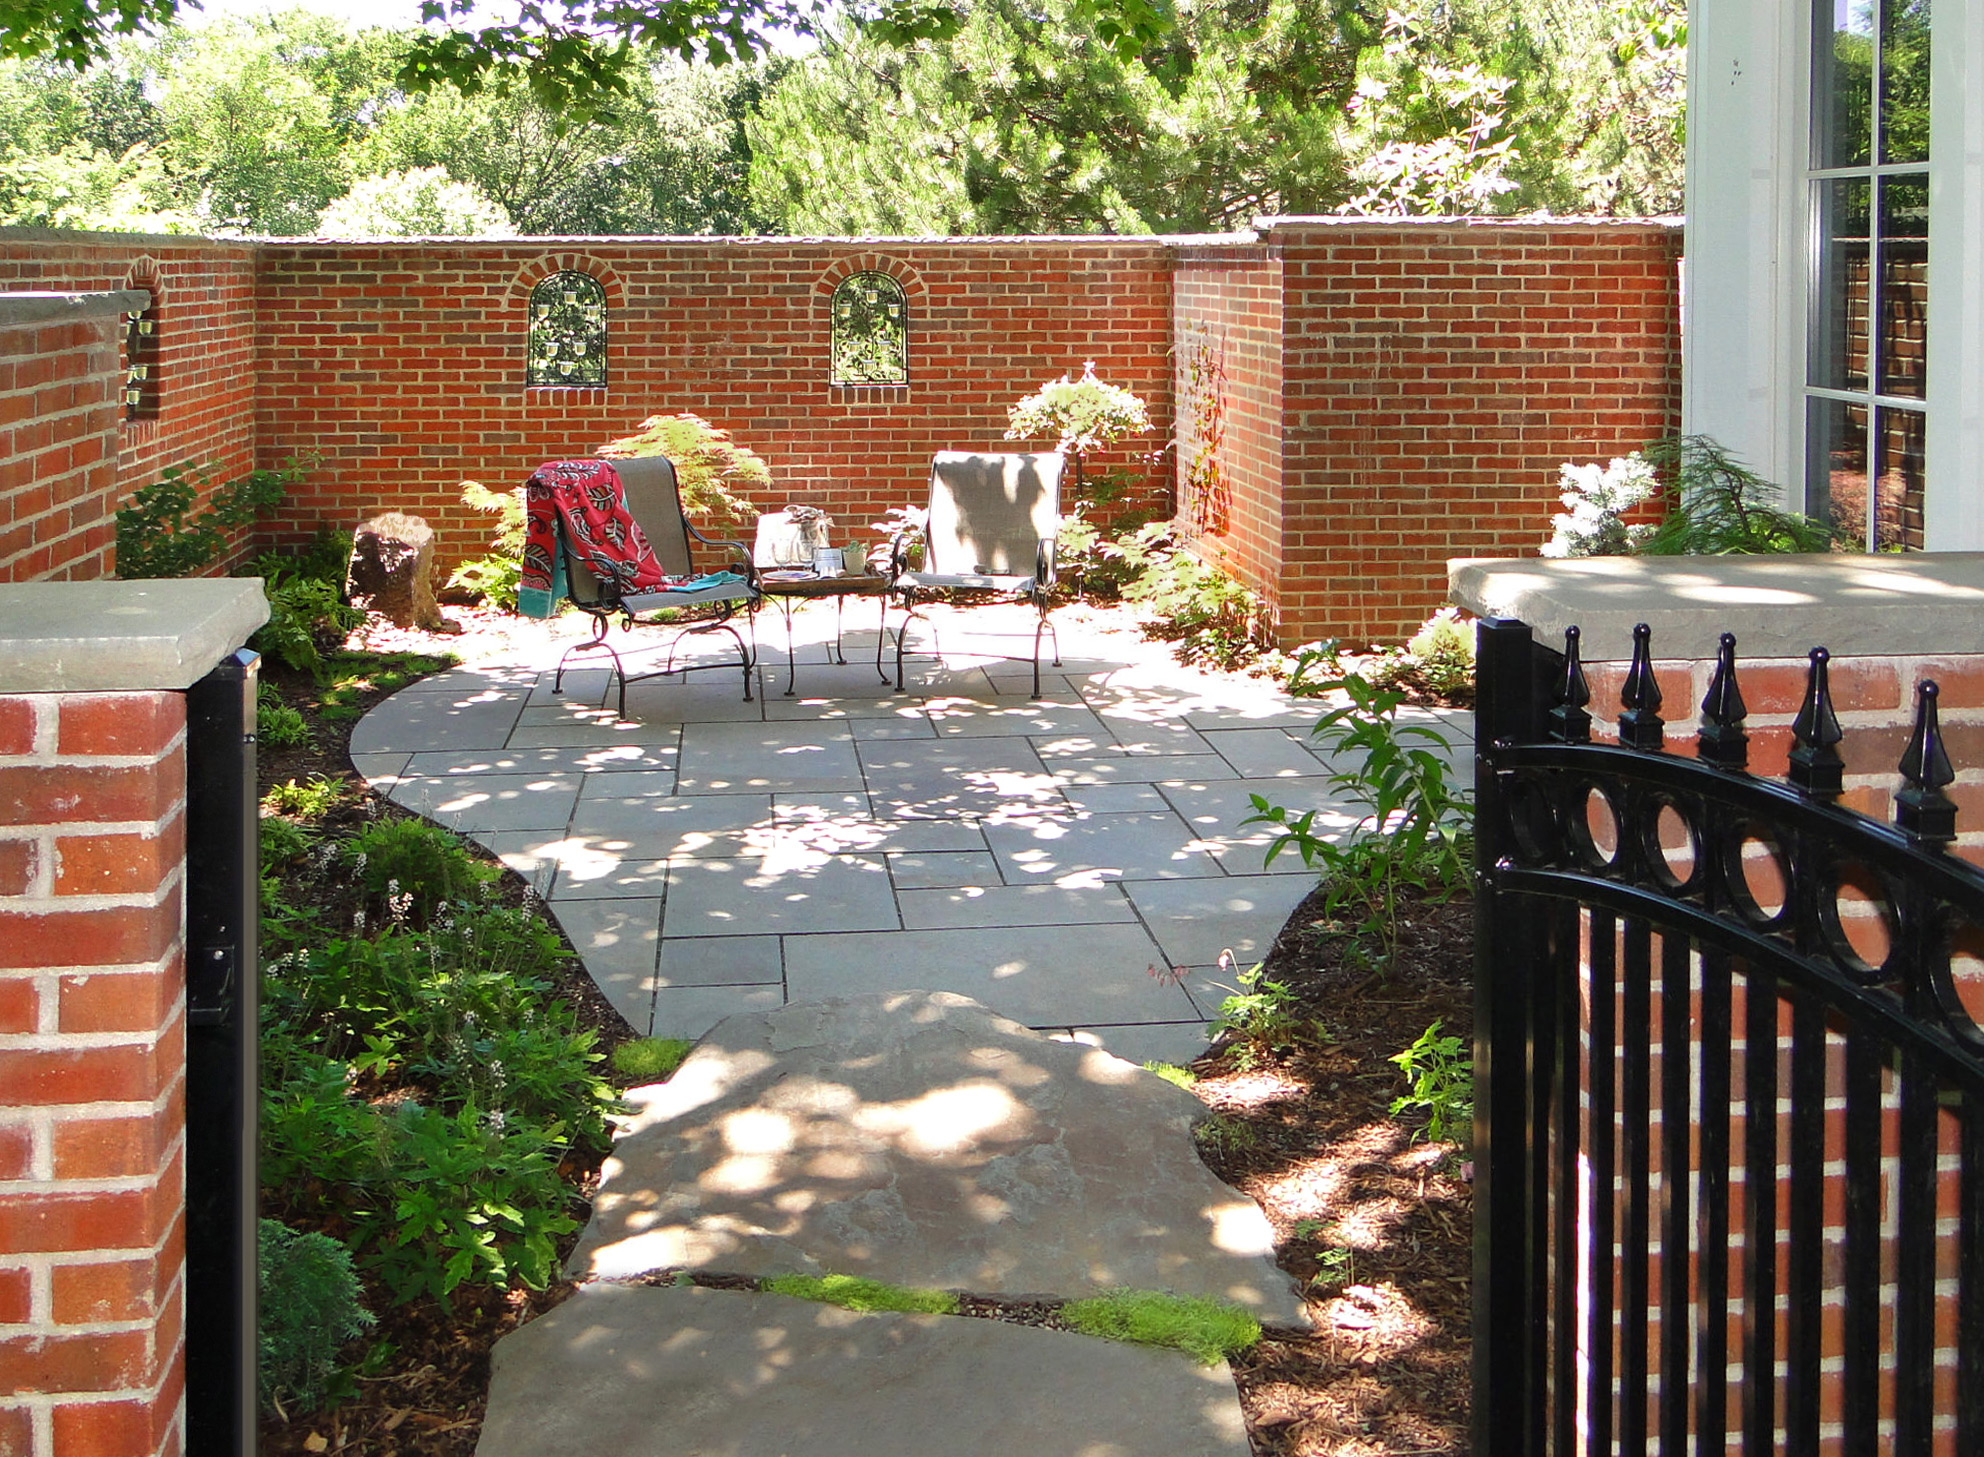 Walled garden with patio hardscaping and landscaping.